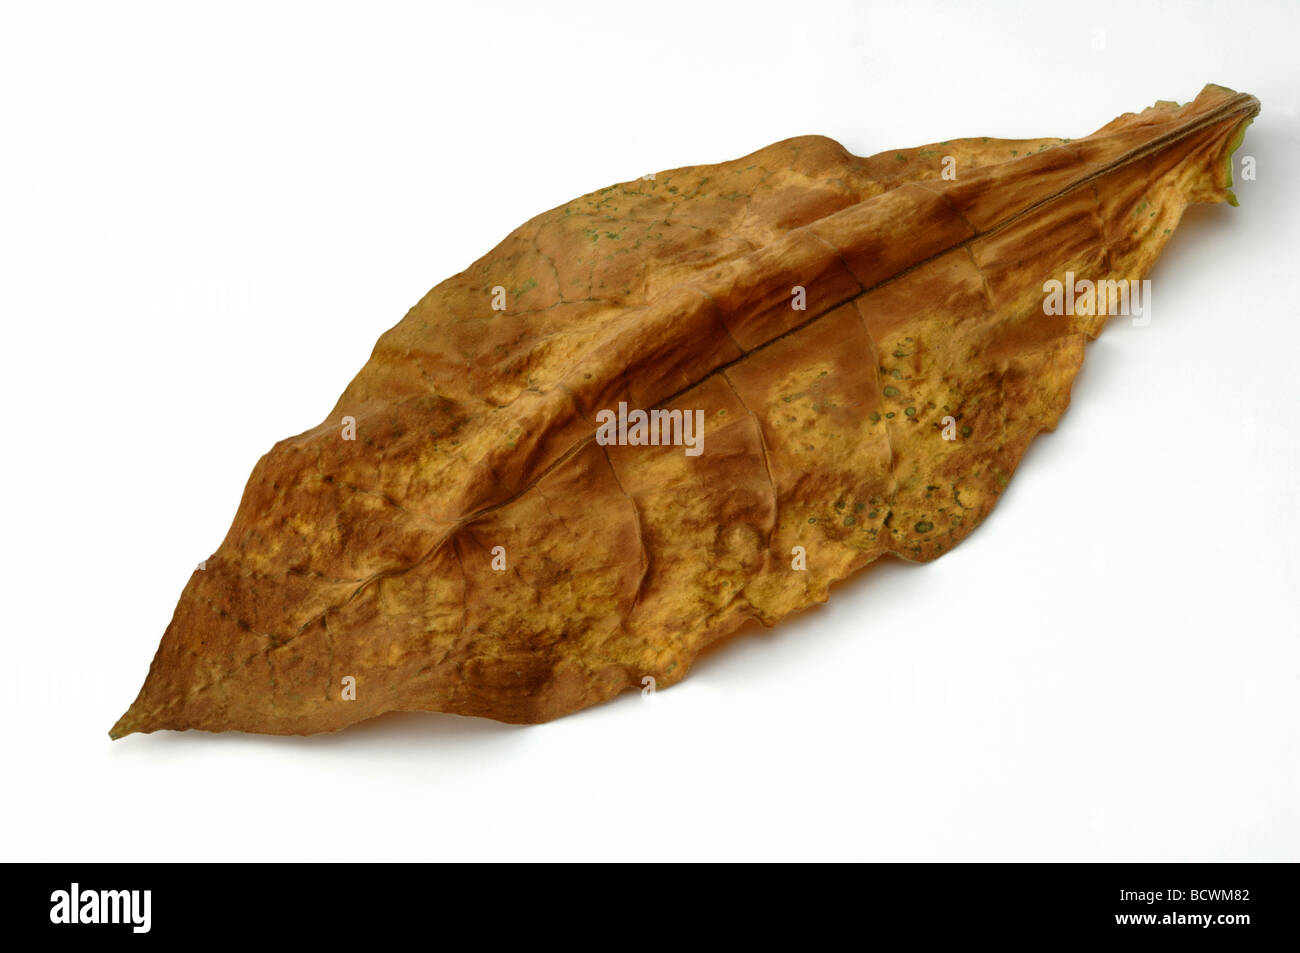 Common Tobacco, Tobacco (Nicotiana tabacum), dried leaf, studio picture - Stock Image